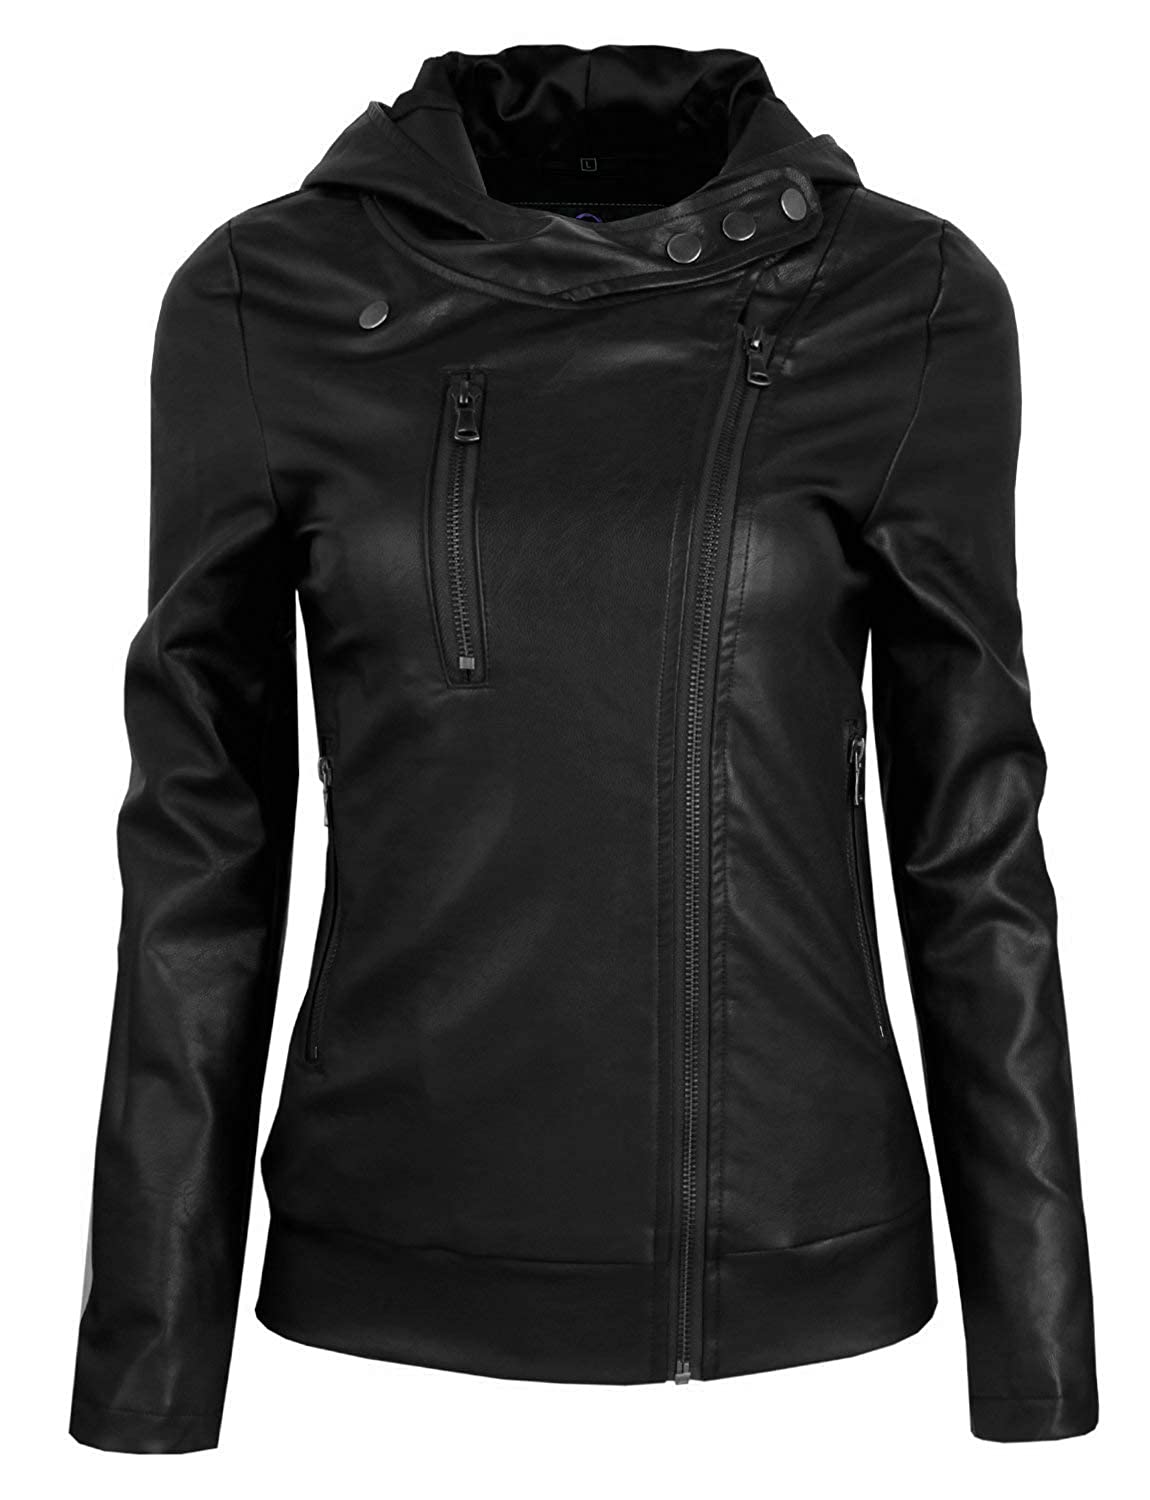 Chase Squad Designer Faux Leather Jackets Women  Notch Collar Jacket with Hoodie Black